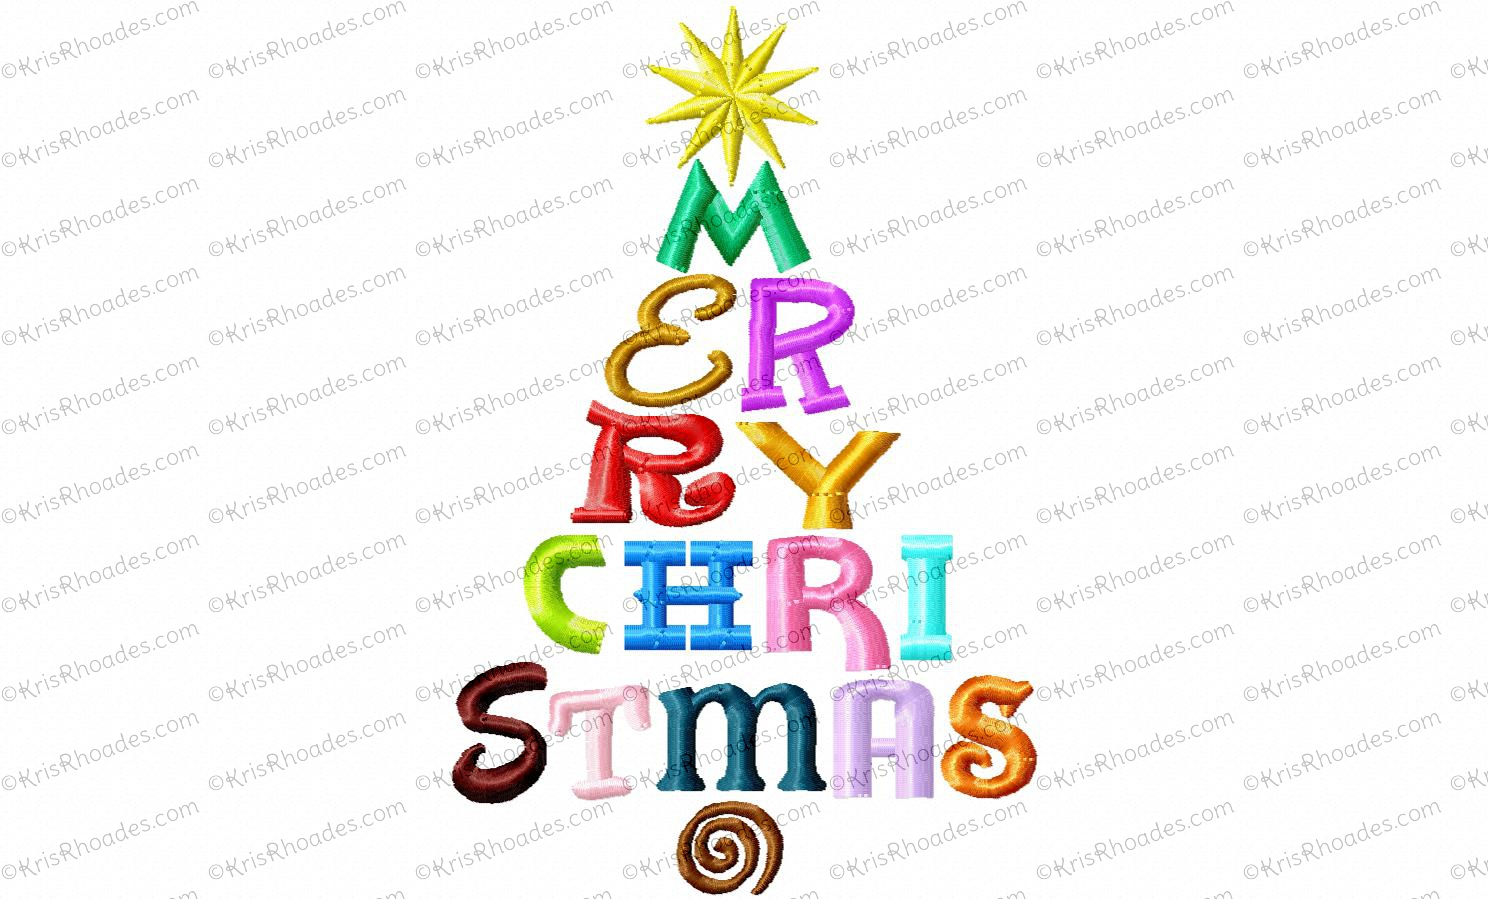 Merry Christmas Fonts Images.Merry Christmas Fonts Tree Embroidery Design